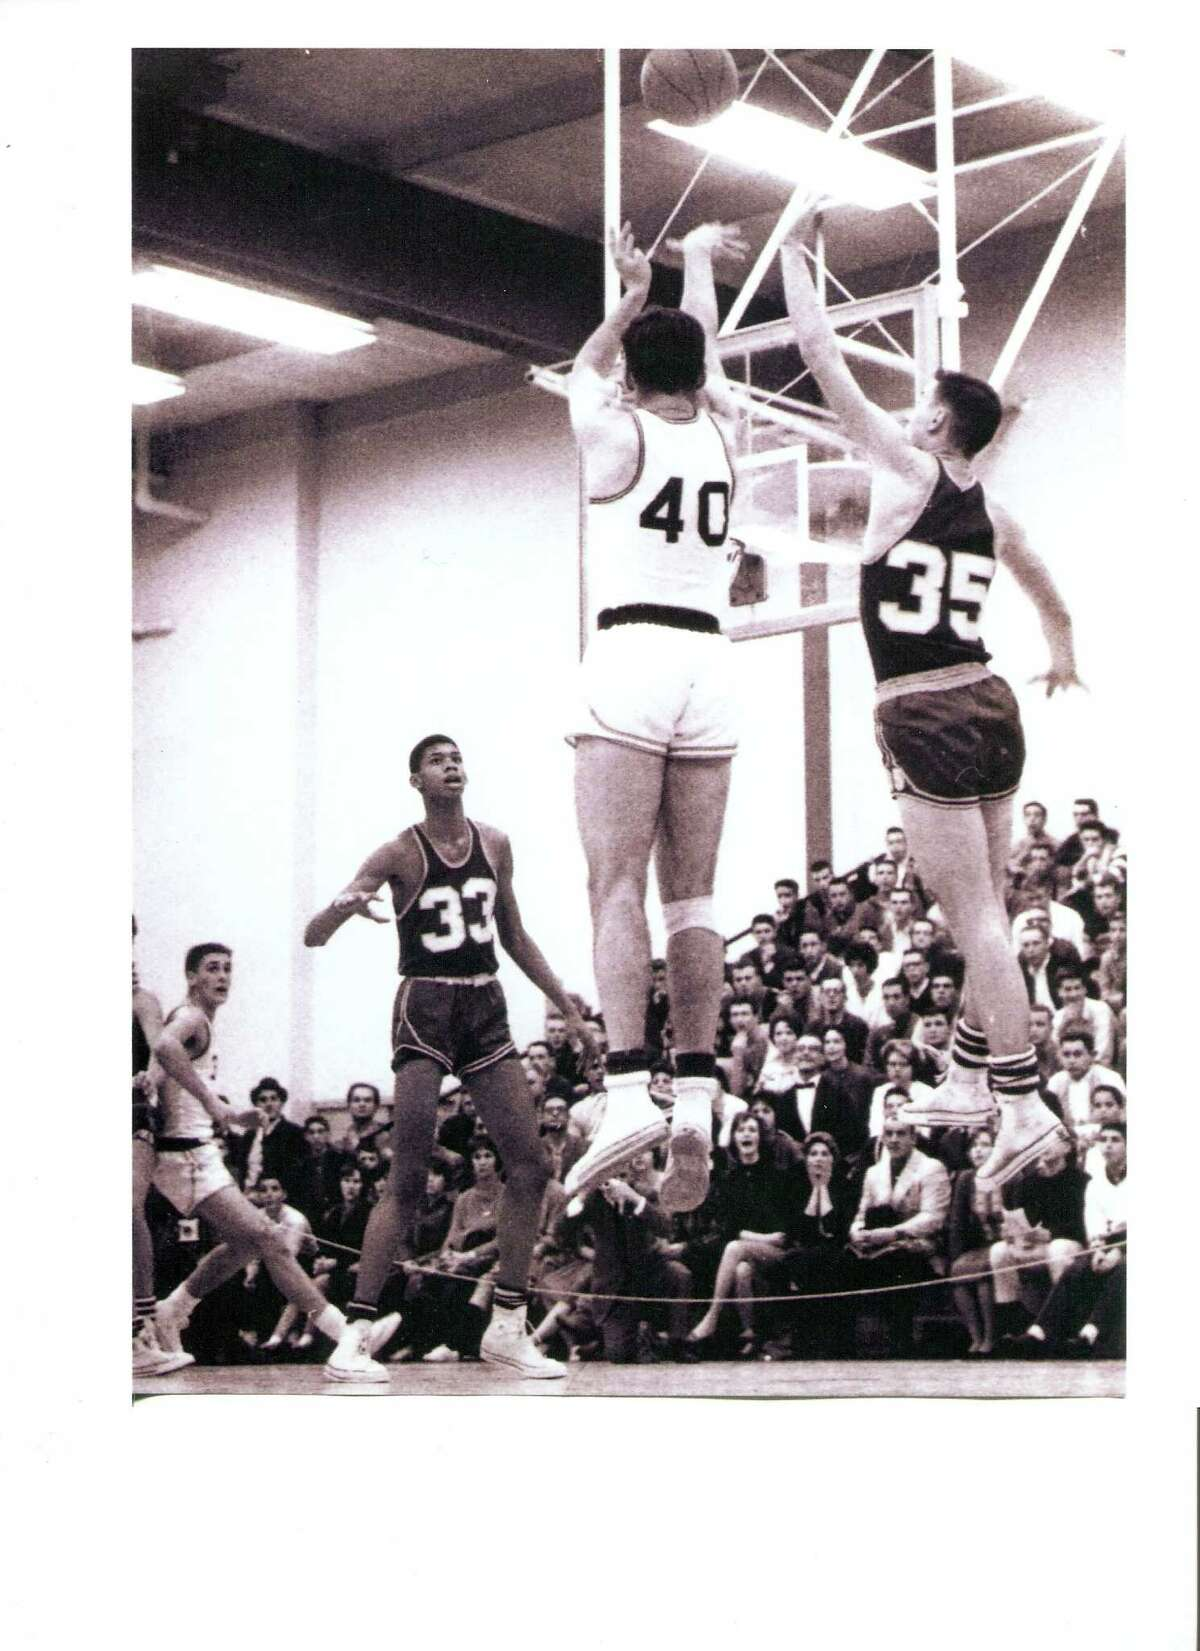 No. 33 Lew Alcindor and Pat Riley, boxing out at left, at the 1961 meeting of the 2 NBA Hall of Famers in Schenectady, N.Y. The home team beat Power Memorial 74-68. Bob DeLuca No. 40 and and Riley both scored 19 for the Linton High School squad that held Lew, later Kareem Abdul-Jabbar, to 8 points. Read more about it in Marv Cermak's column. (Photo courtesy of Bob Pezzanno)